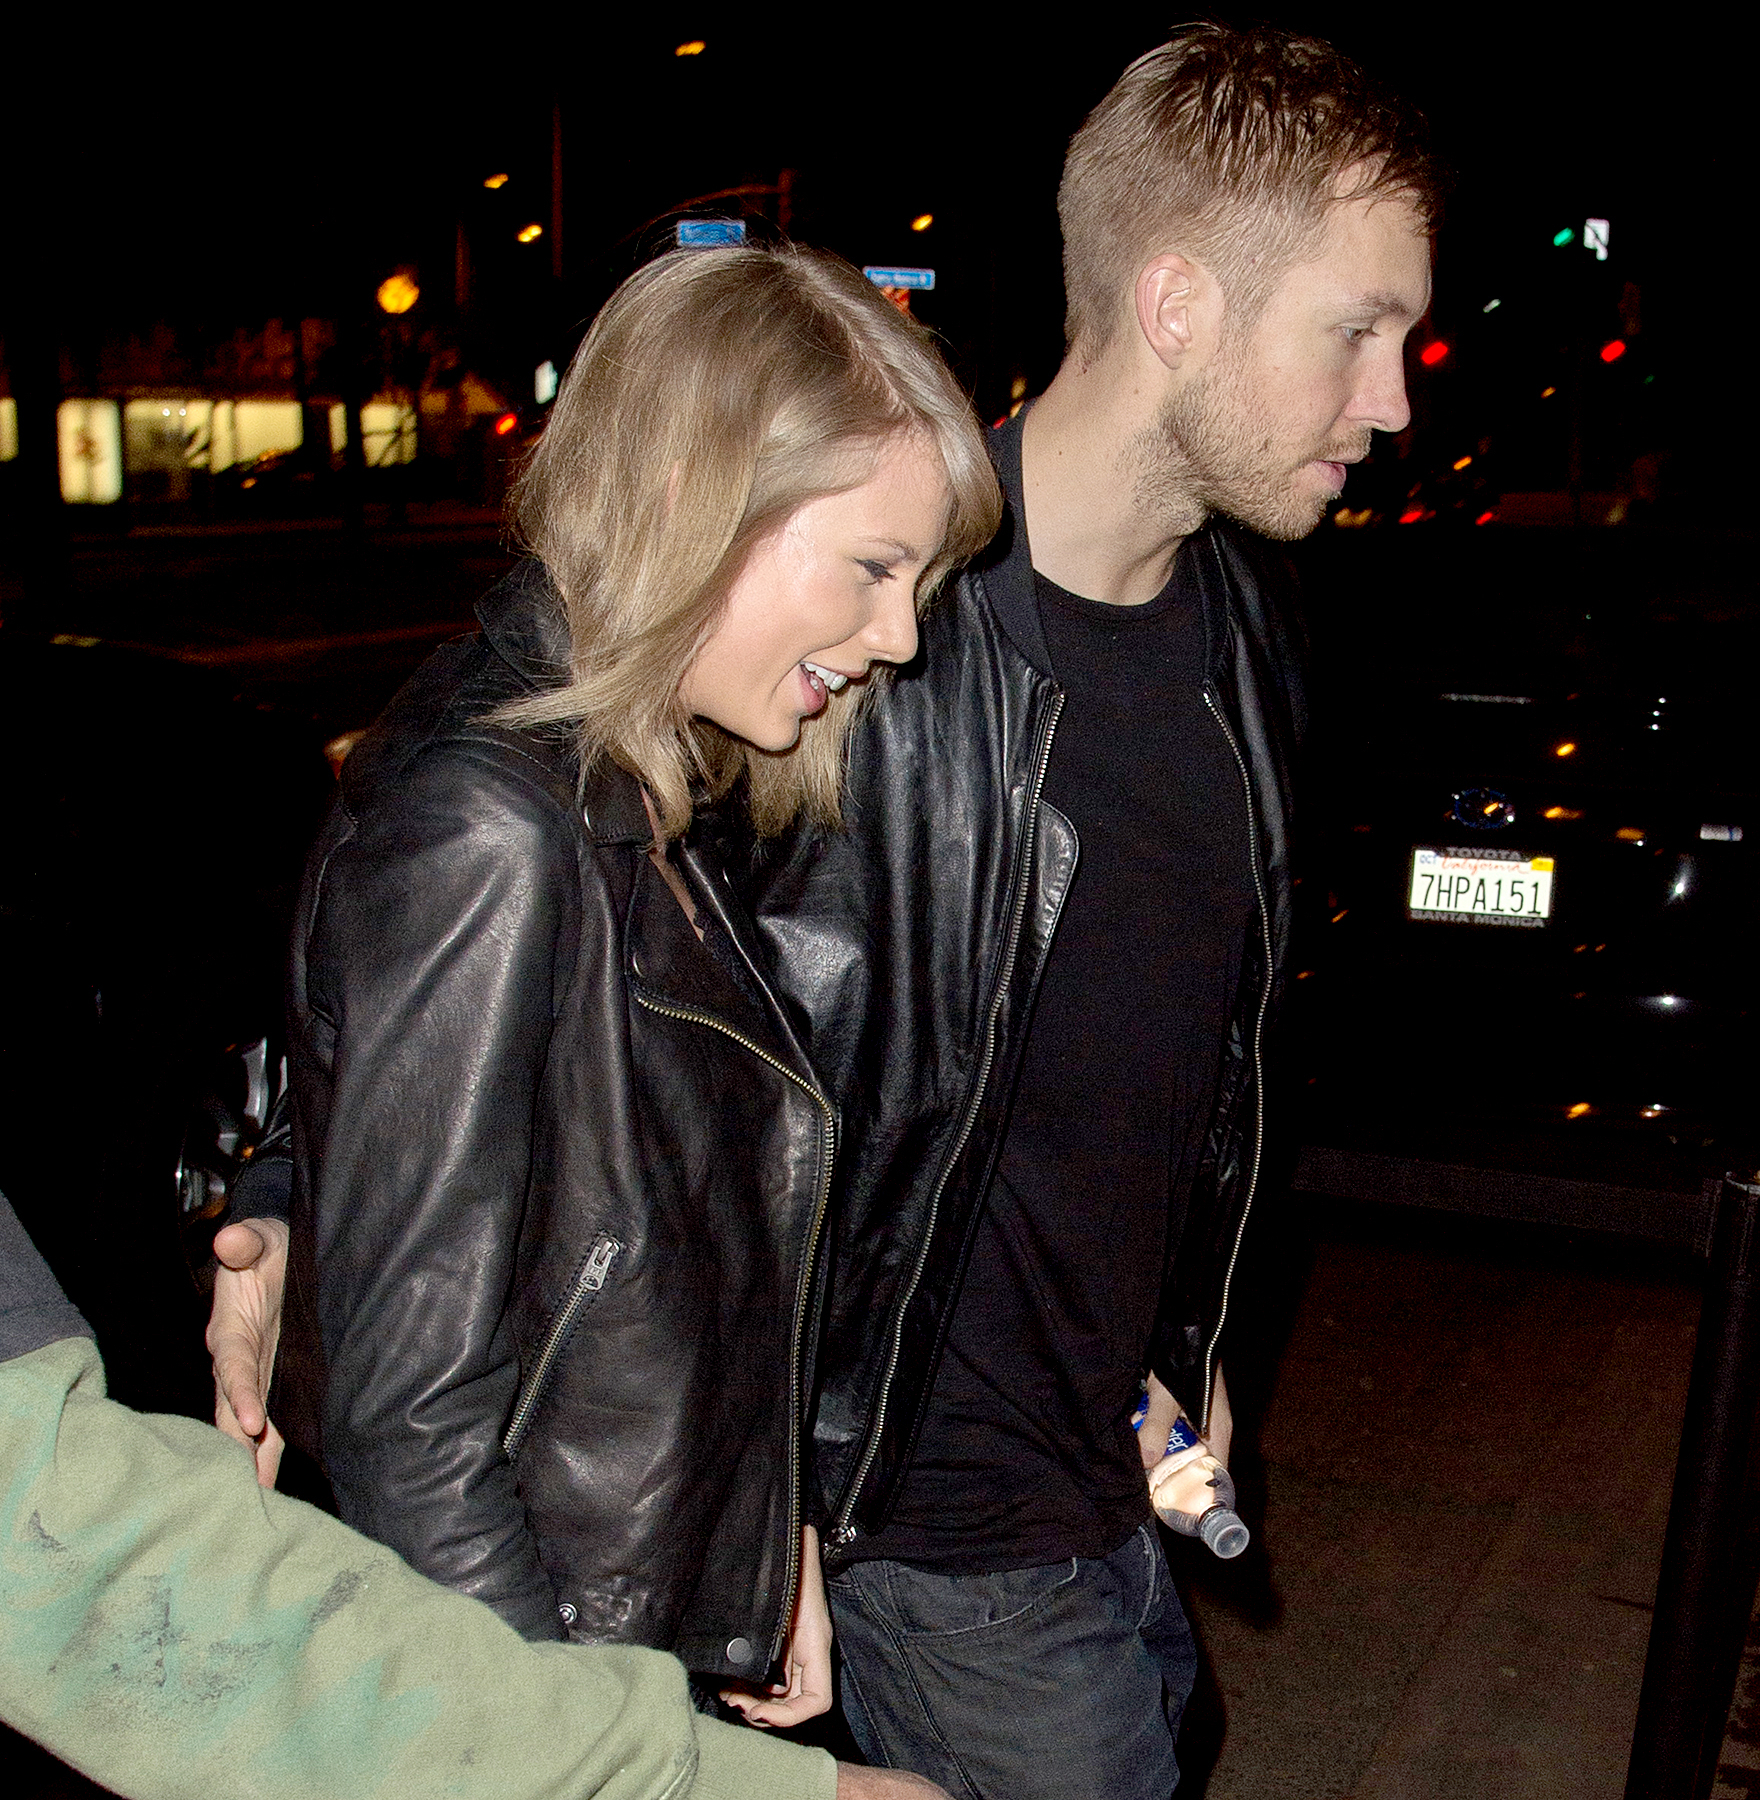 Taylor Swift and Calvin Harris arrive at the Troubadour in West Hollywood to attend a benefit concert April 2, 2015.